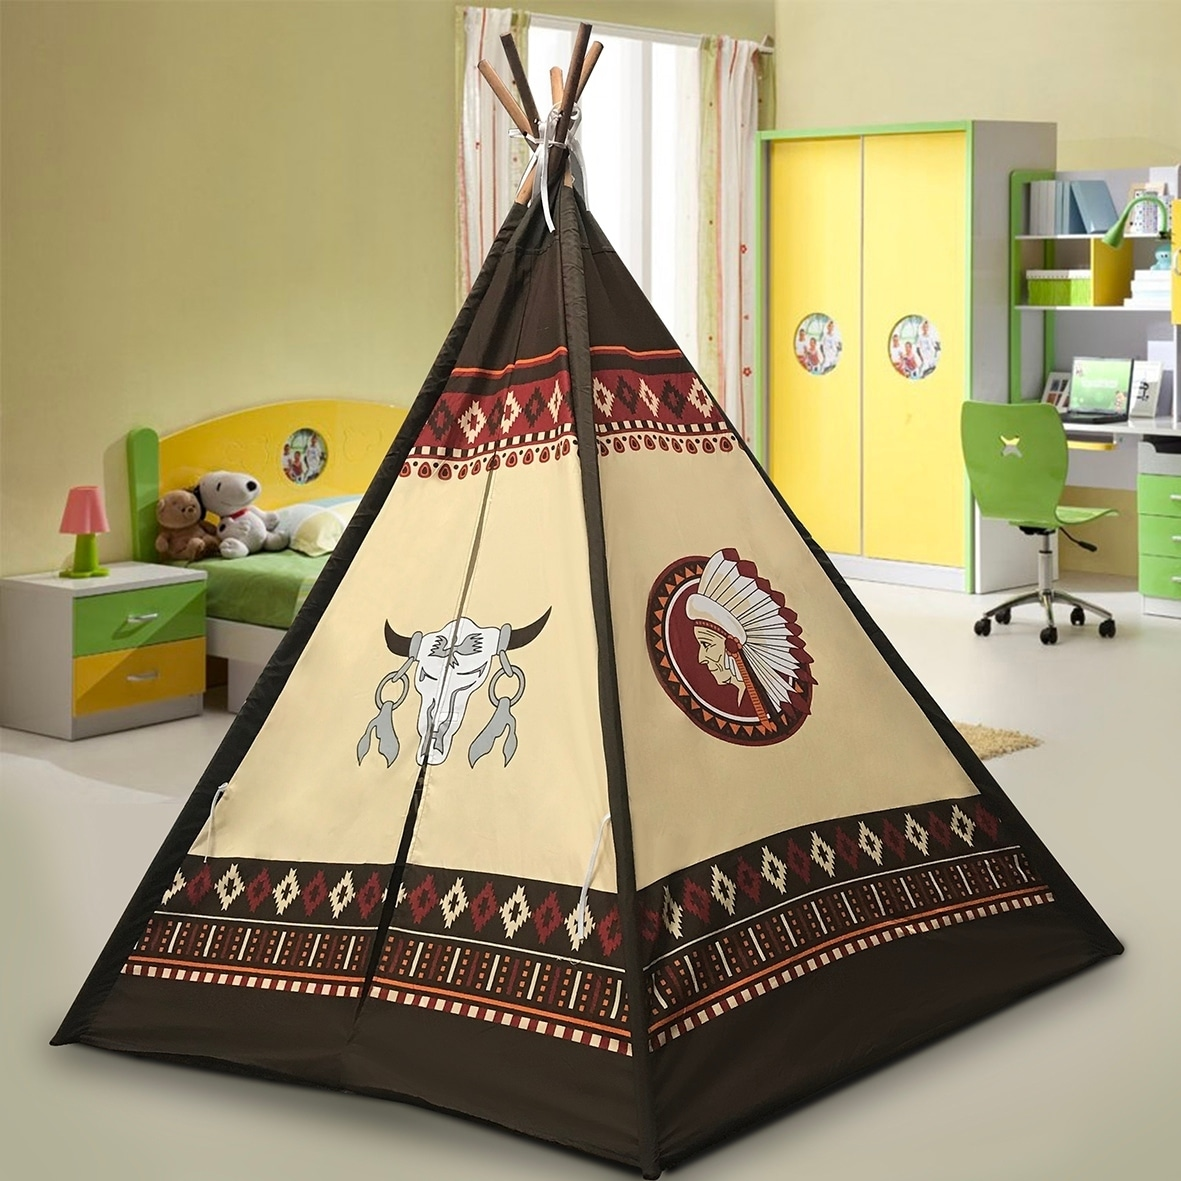 """Indoor TeePee Tent -70"""" Tall Kids Indian Play Tent with 5..."""